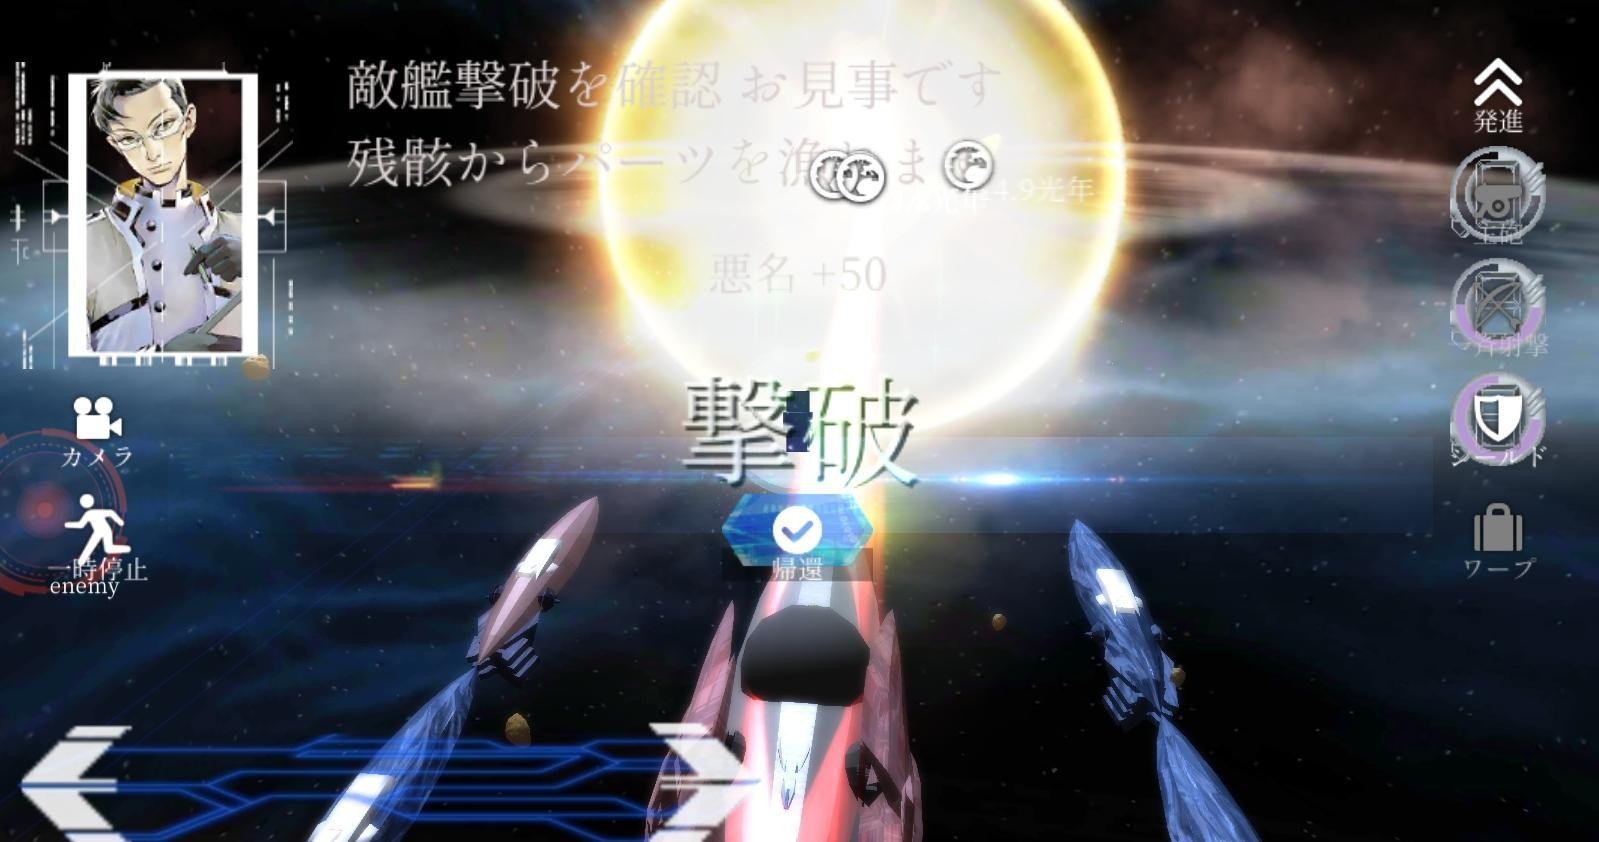 Space Pirate King 45.0 Screenshot 14